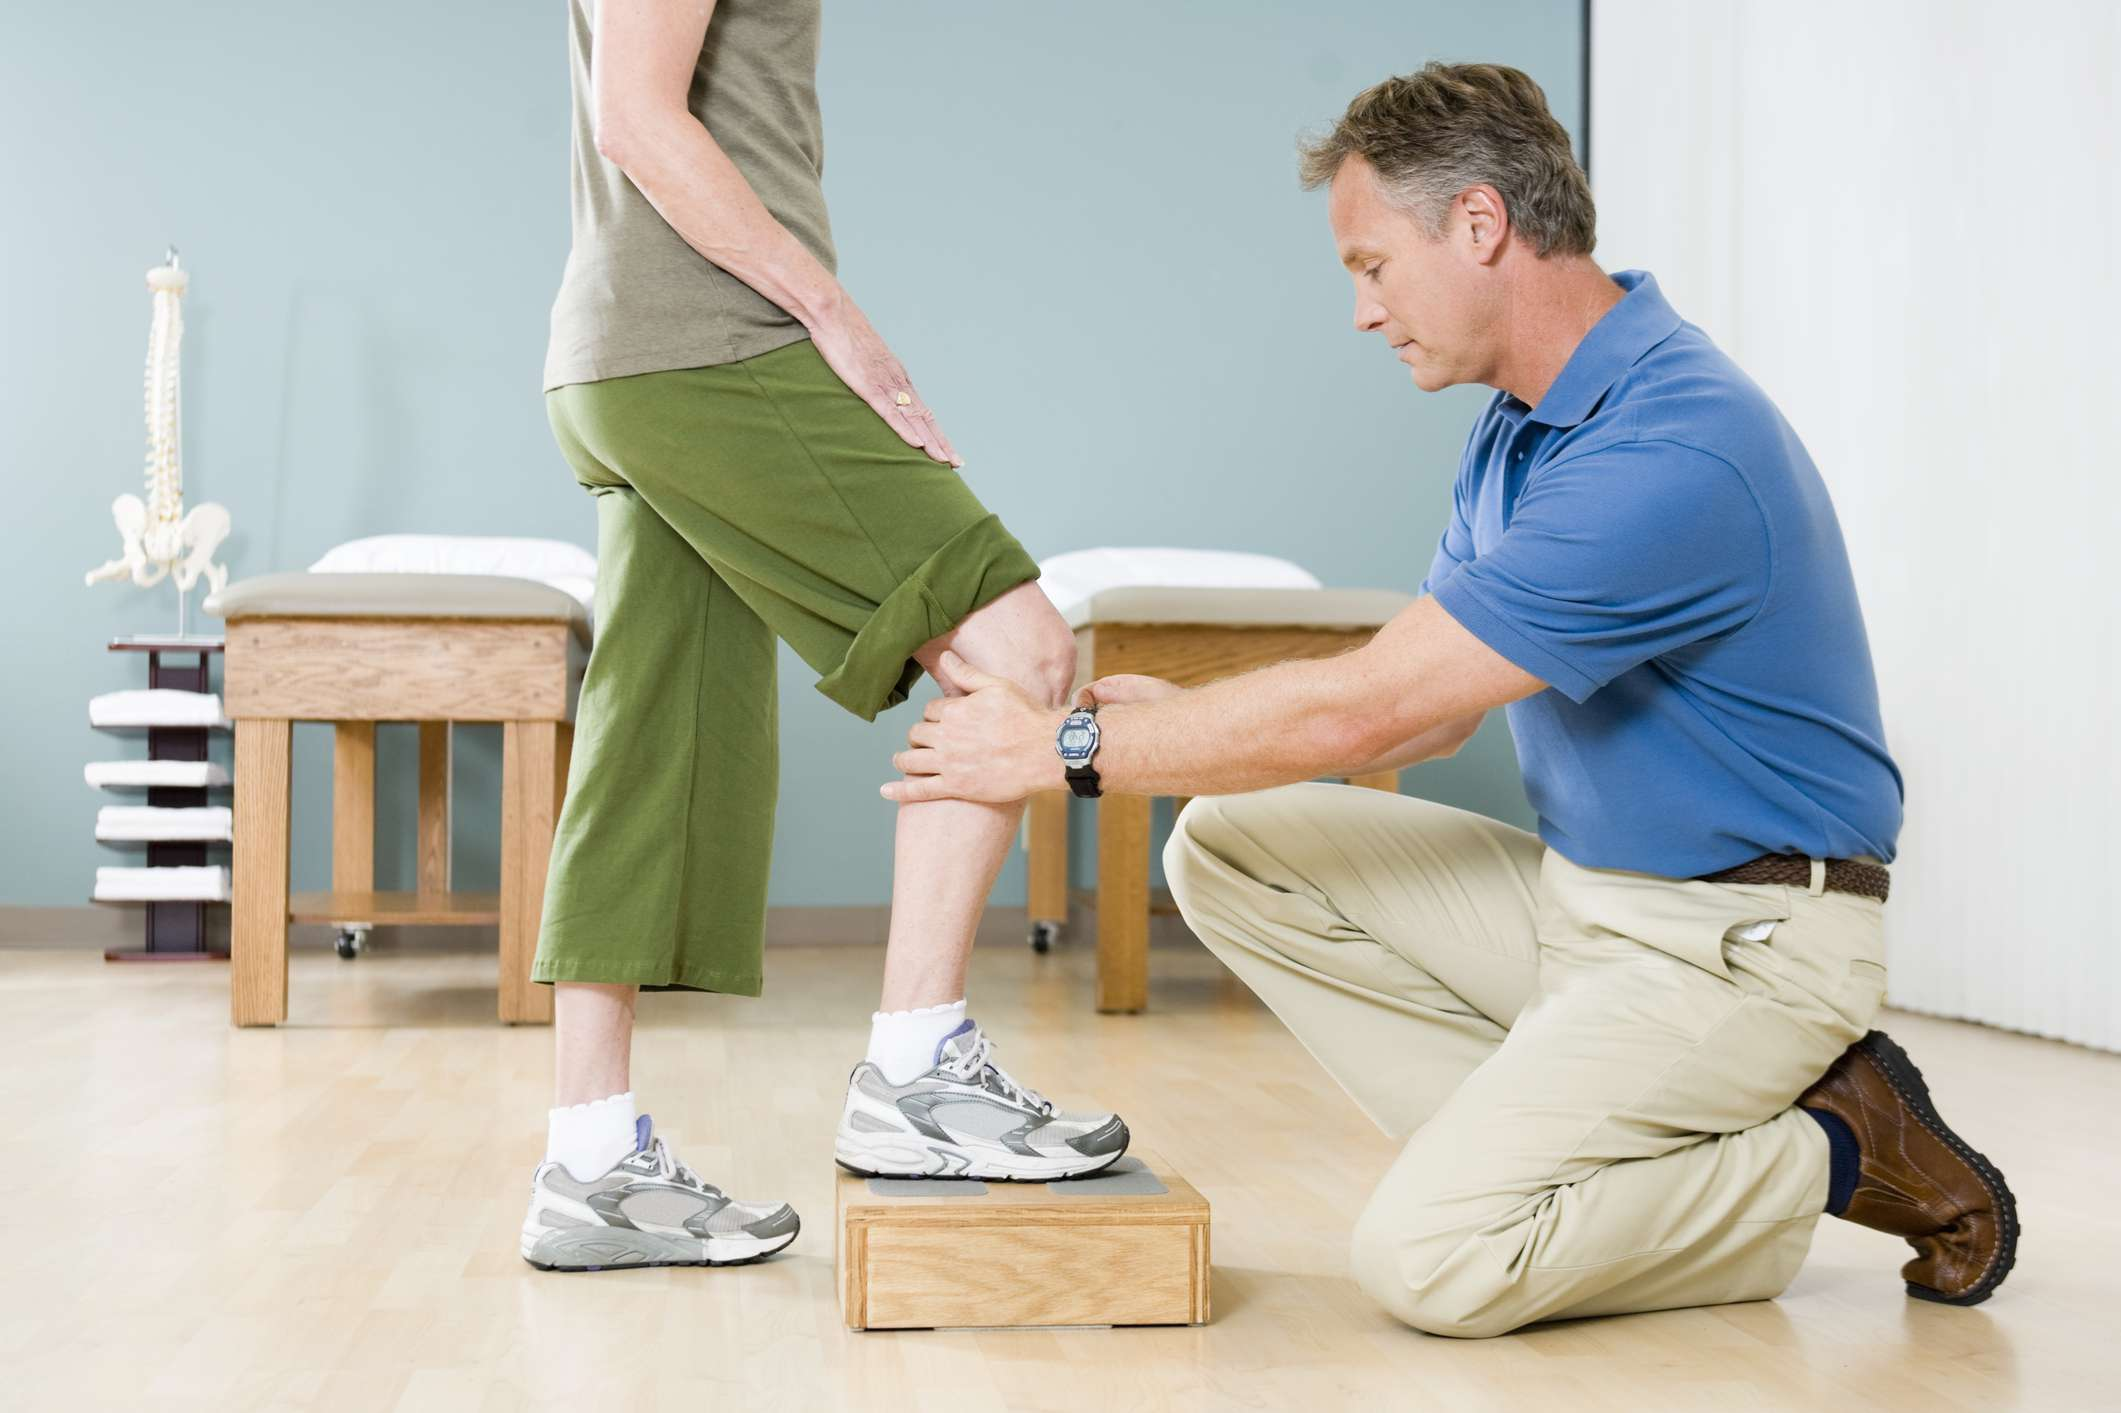 two people doing physical therapy